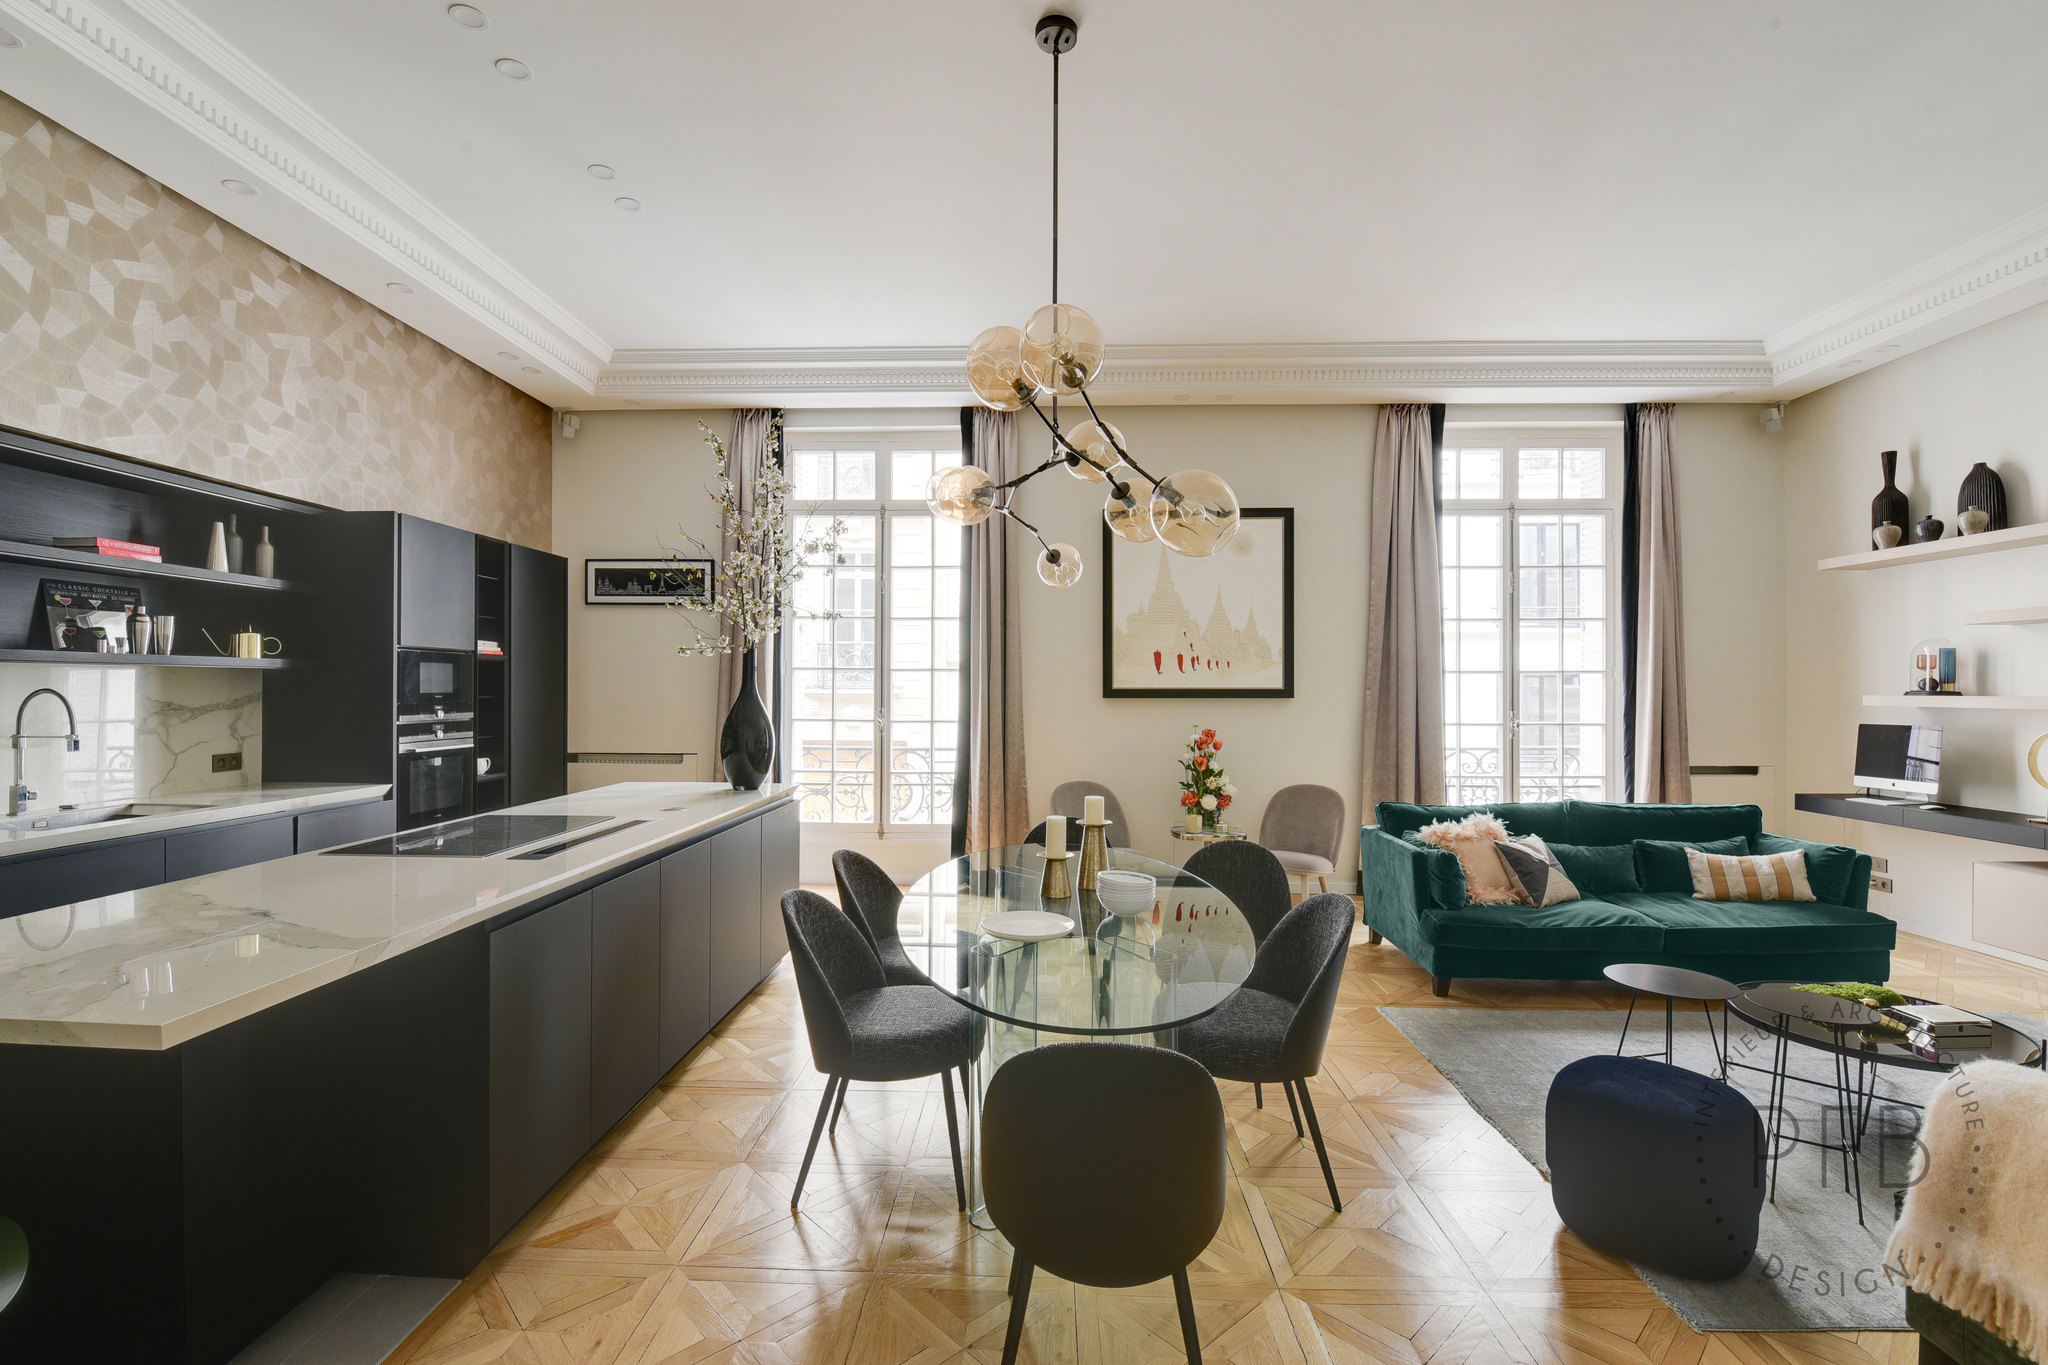 PFBDESIGN-{Artjan}-{appartement}-8.jpg